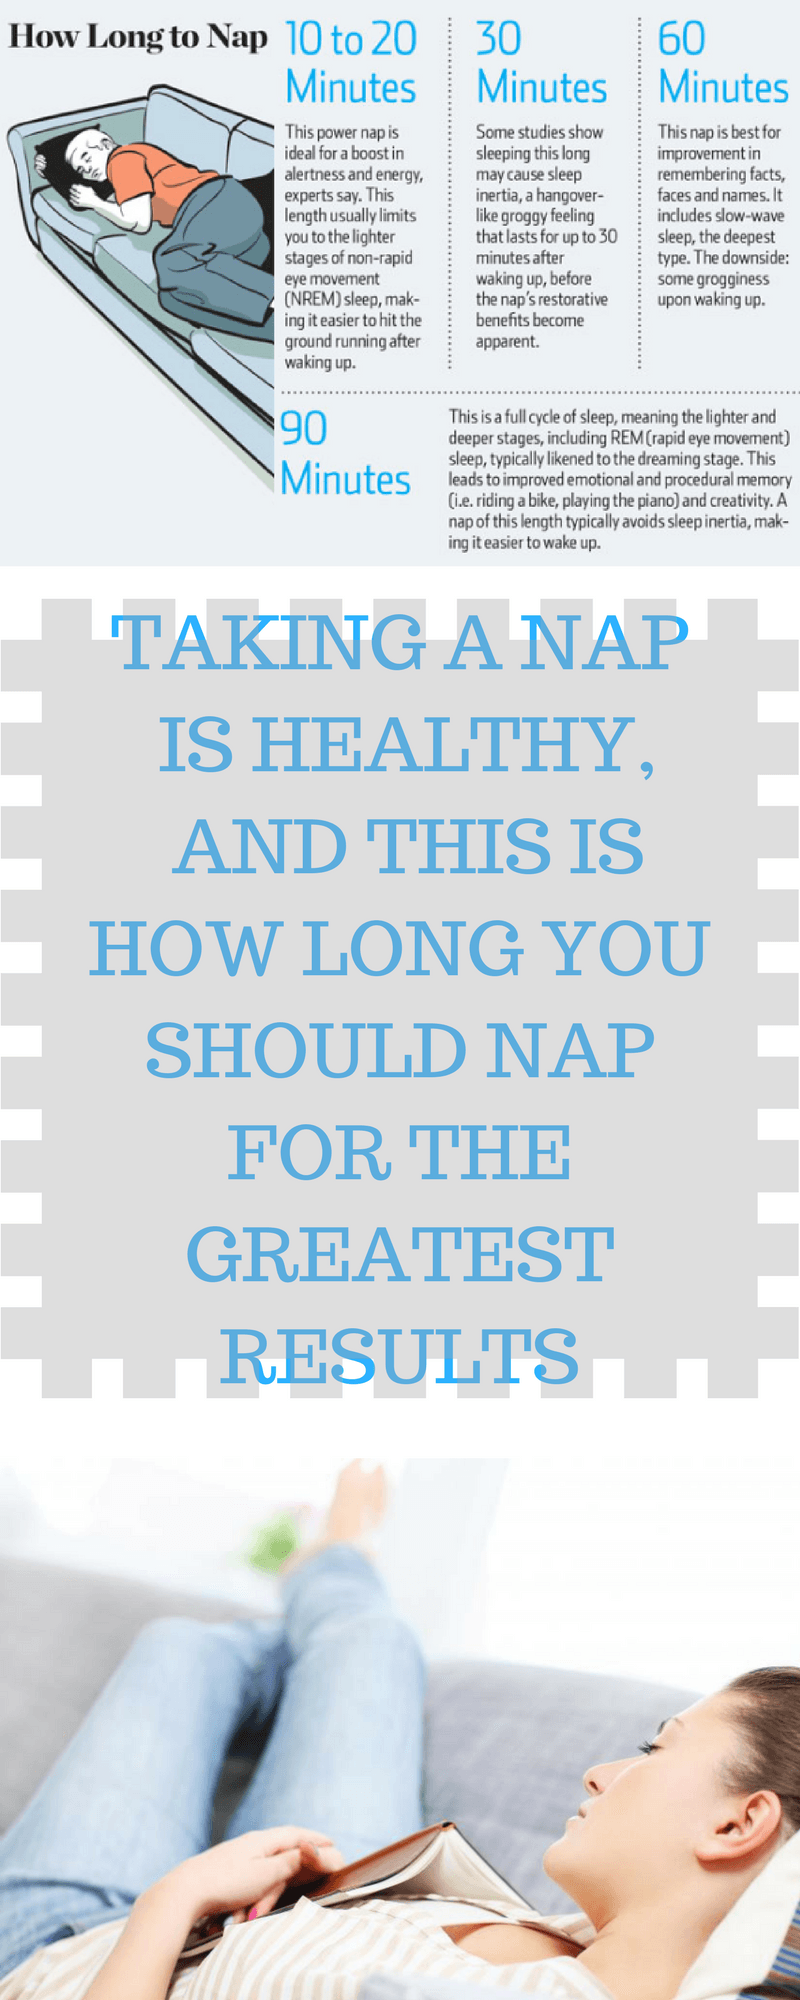 taking a nap is healthy and this is how long you should nap for the